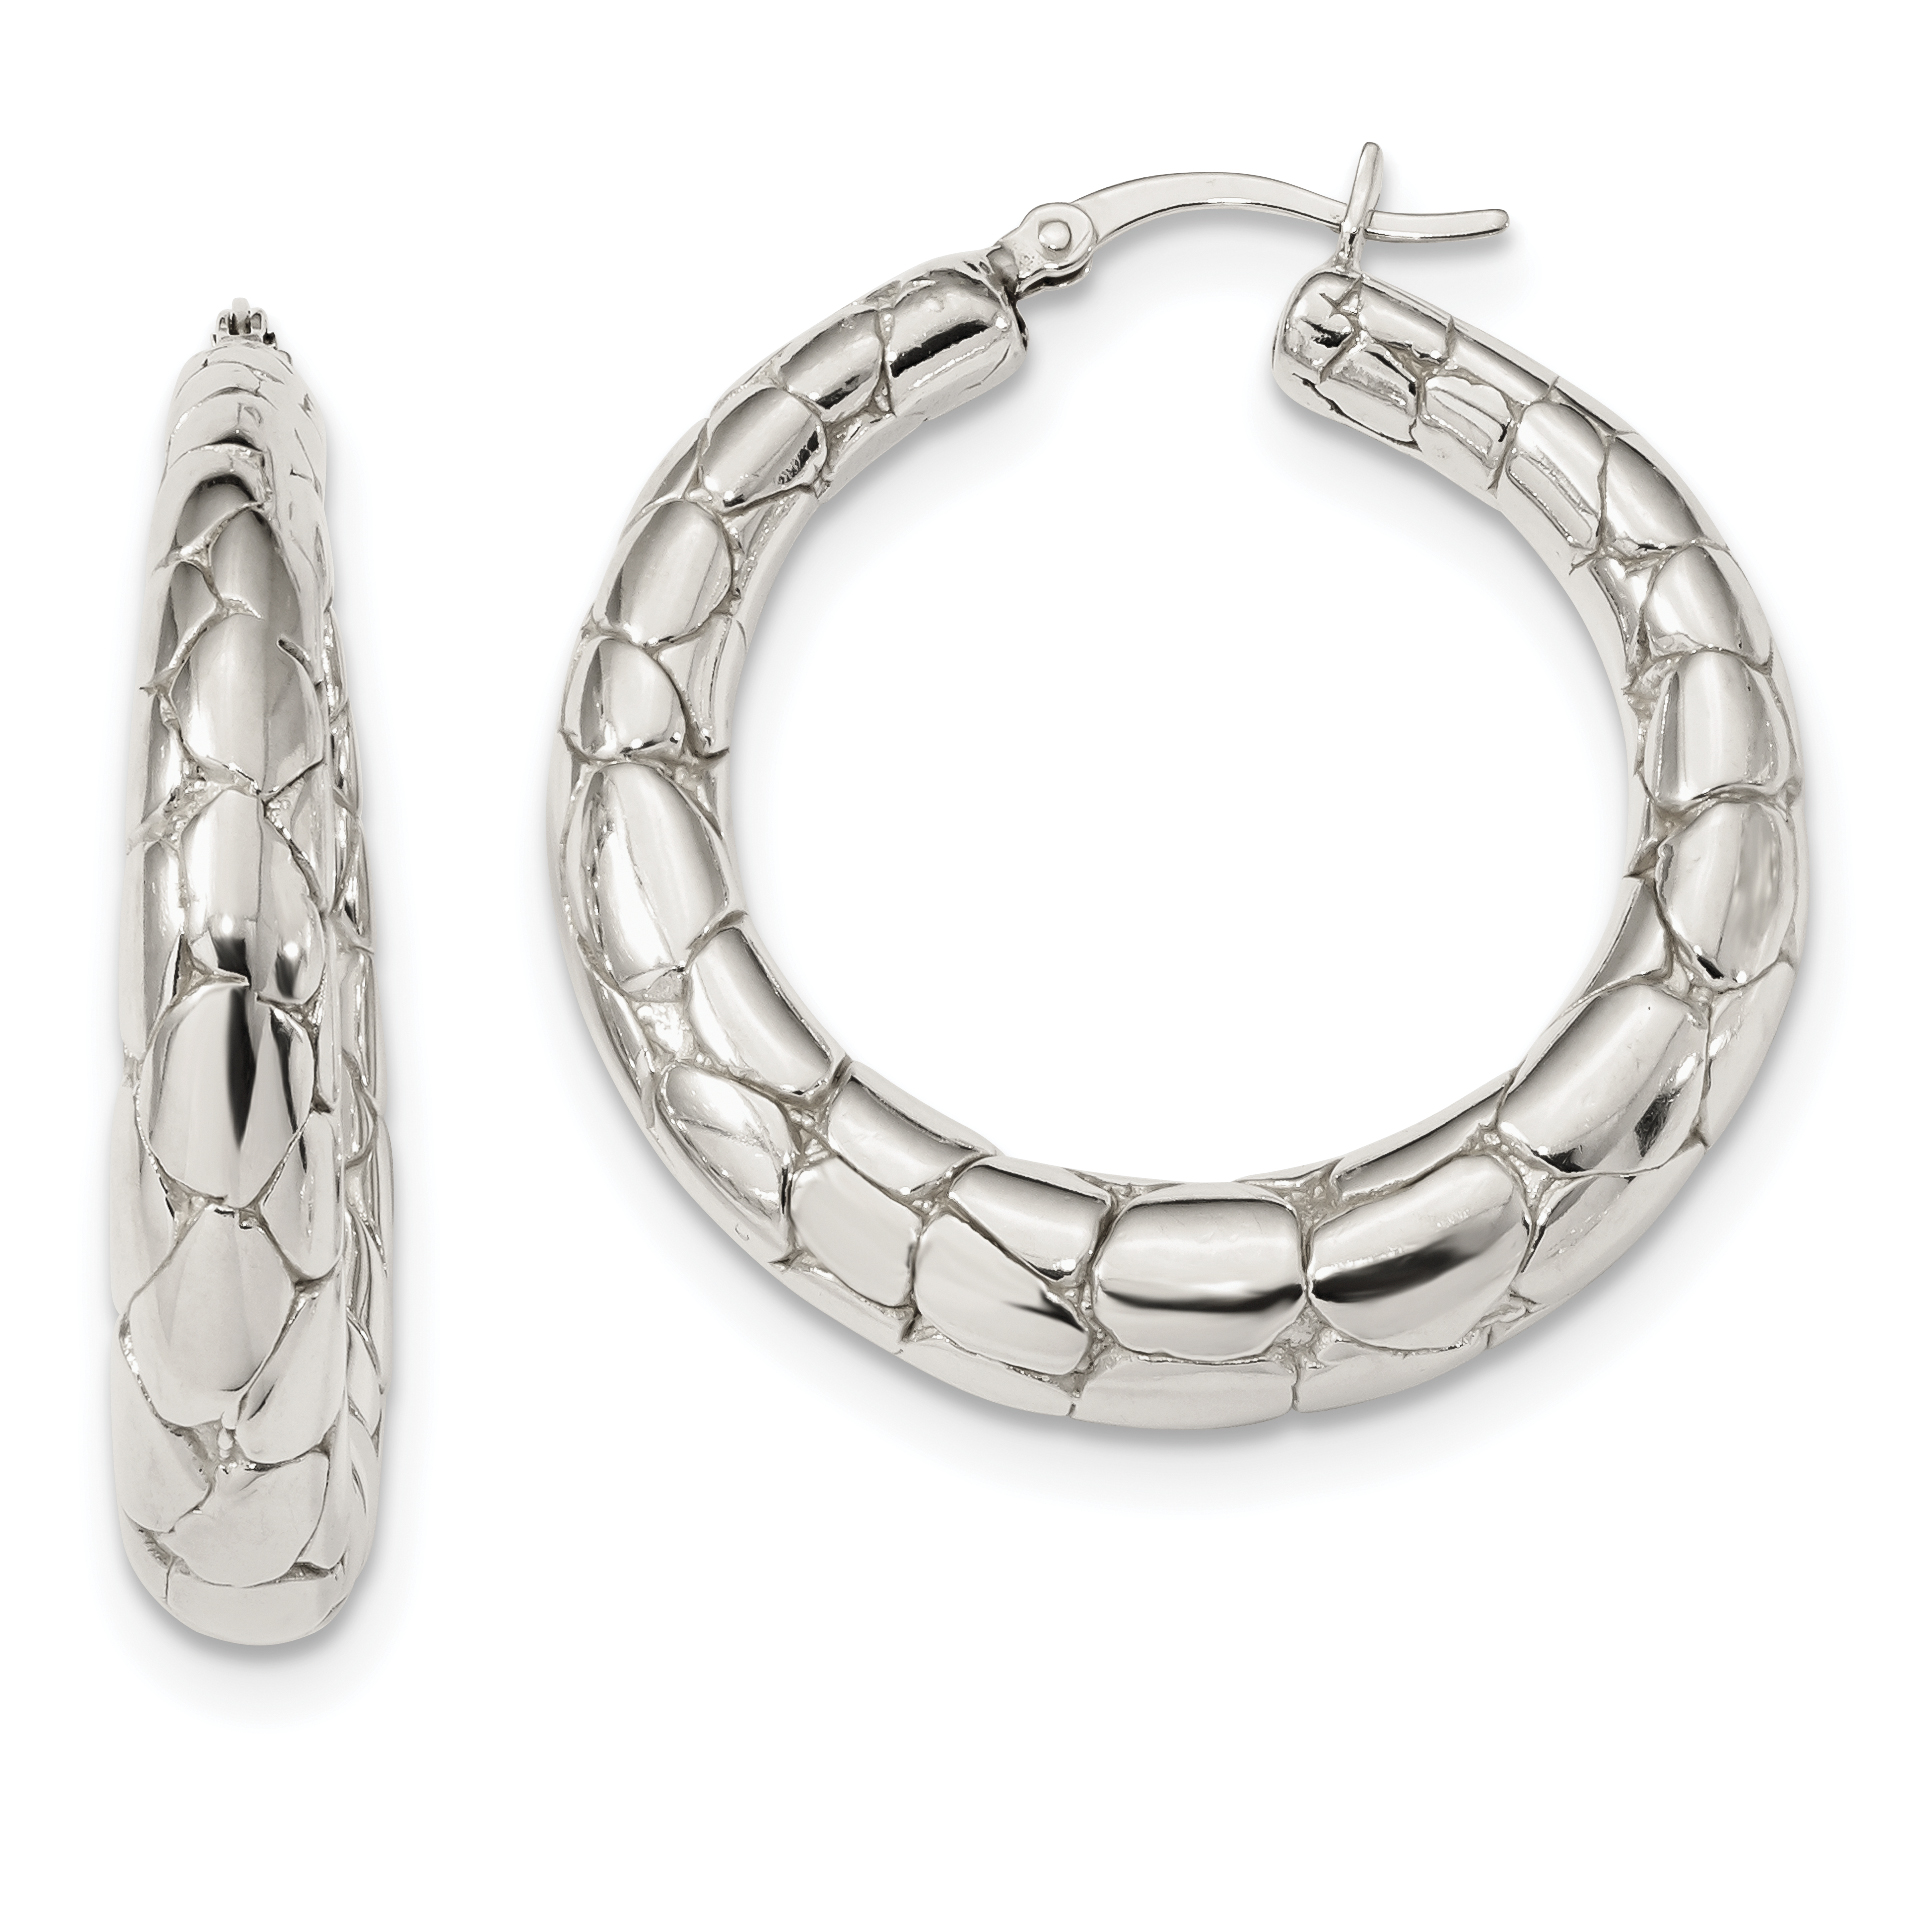 925 Sterling Silver Polished /& Textured Hoop Earrings